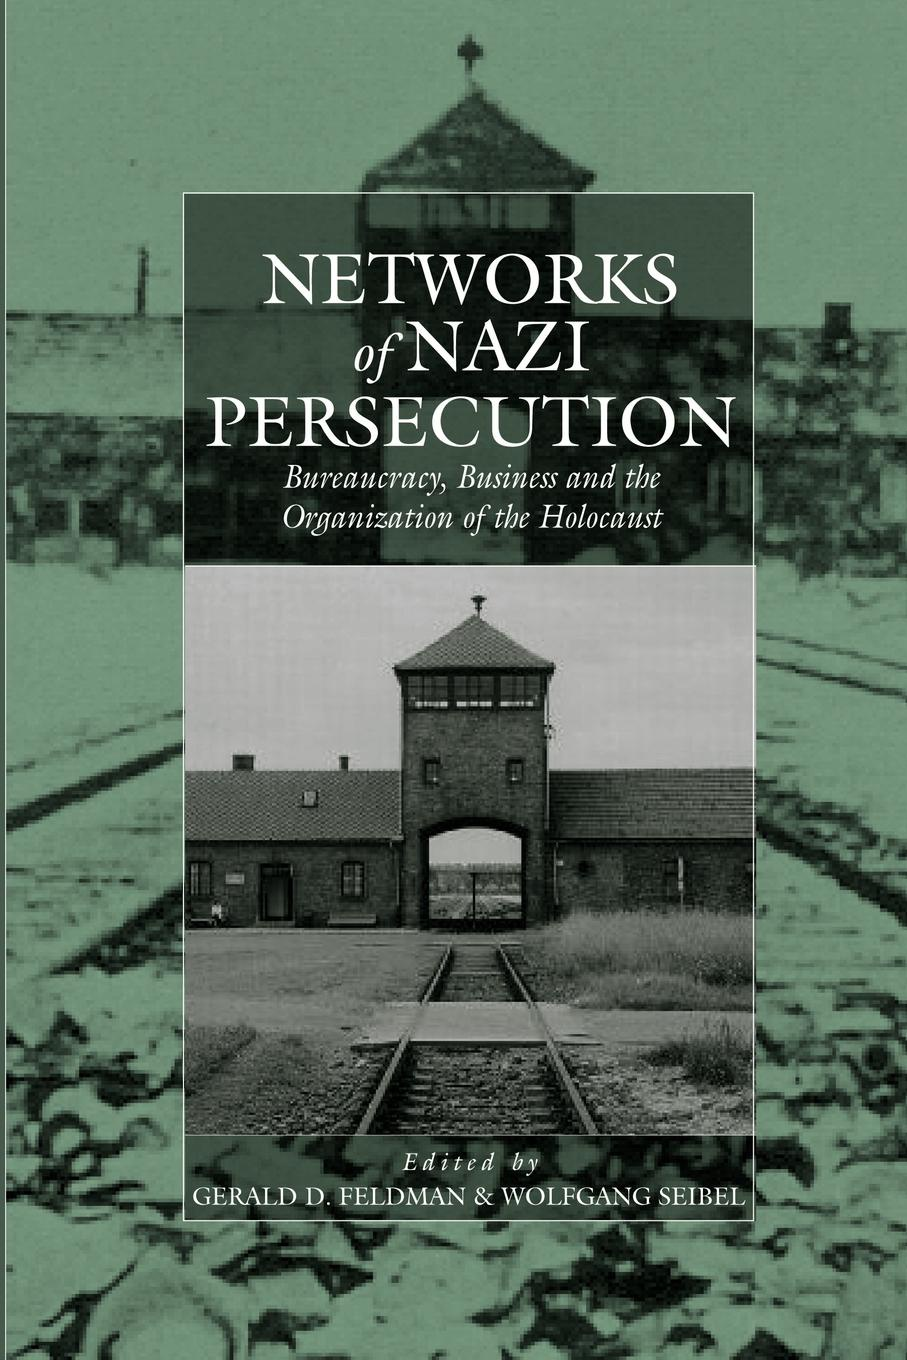 Networks of Nazi Persecution. Bureaucracy, Business and the Organization of the Holocaust networks of nazi persecution bureaucracy business and the organization of the holocaust